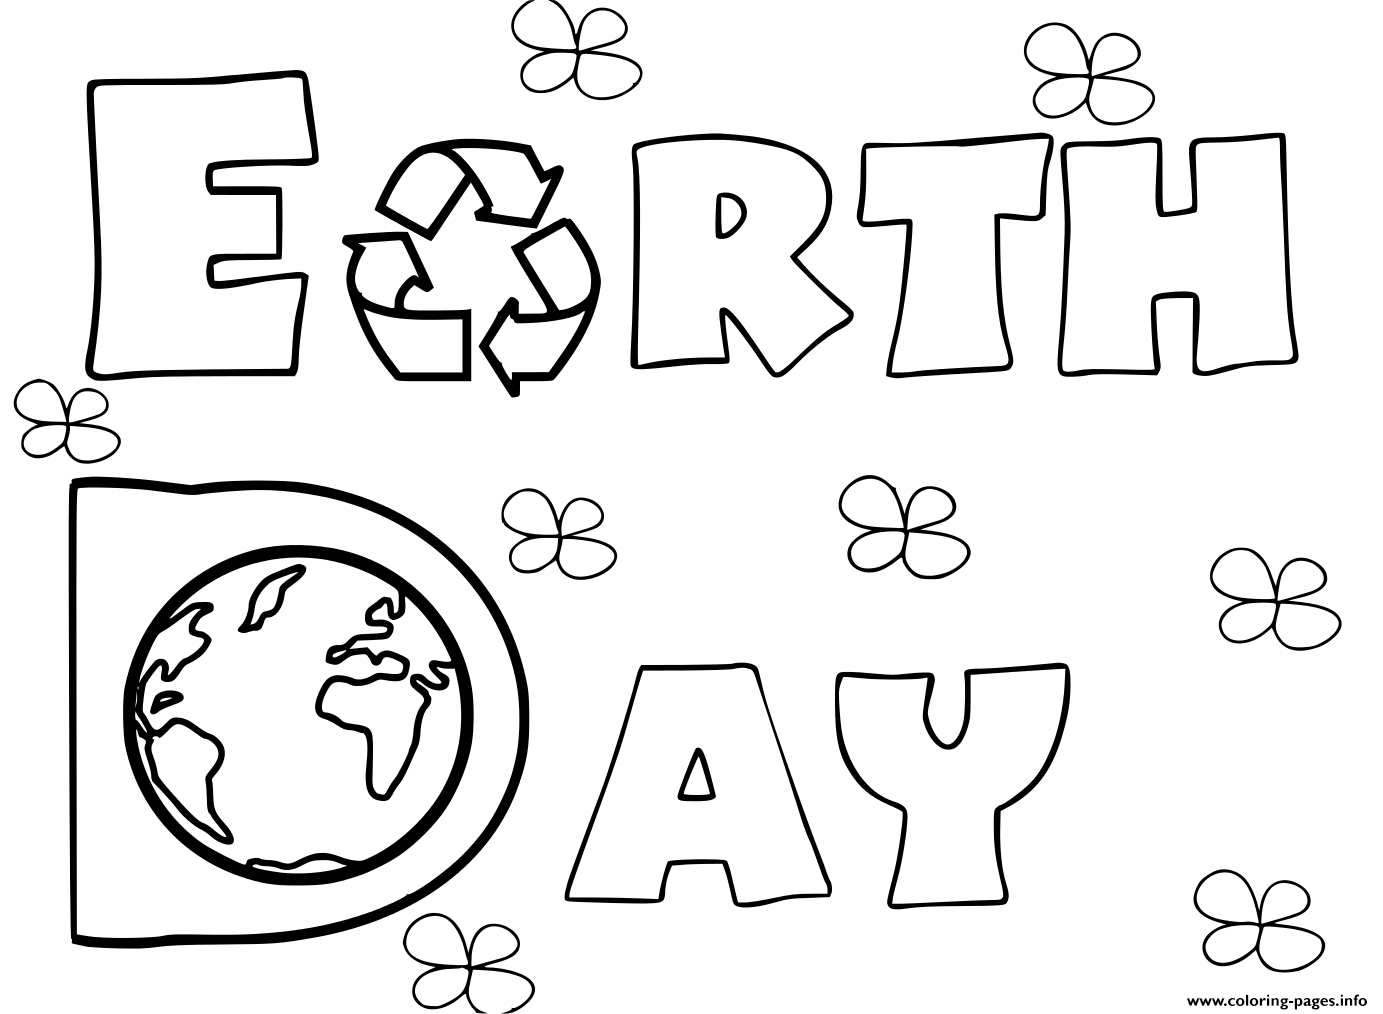 Earth Day Activities Coloring Pages Printable